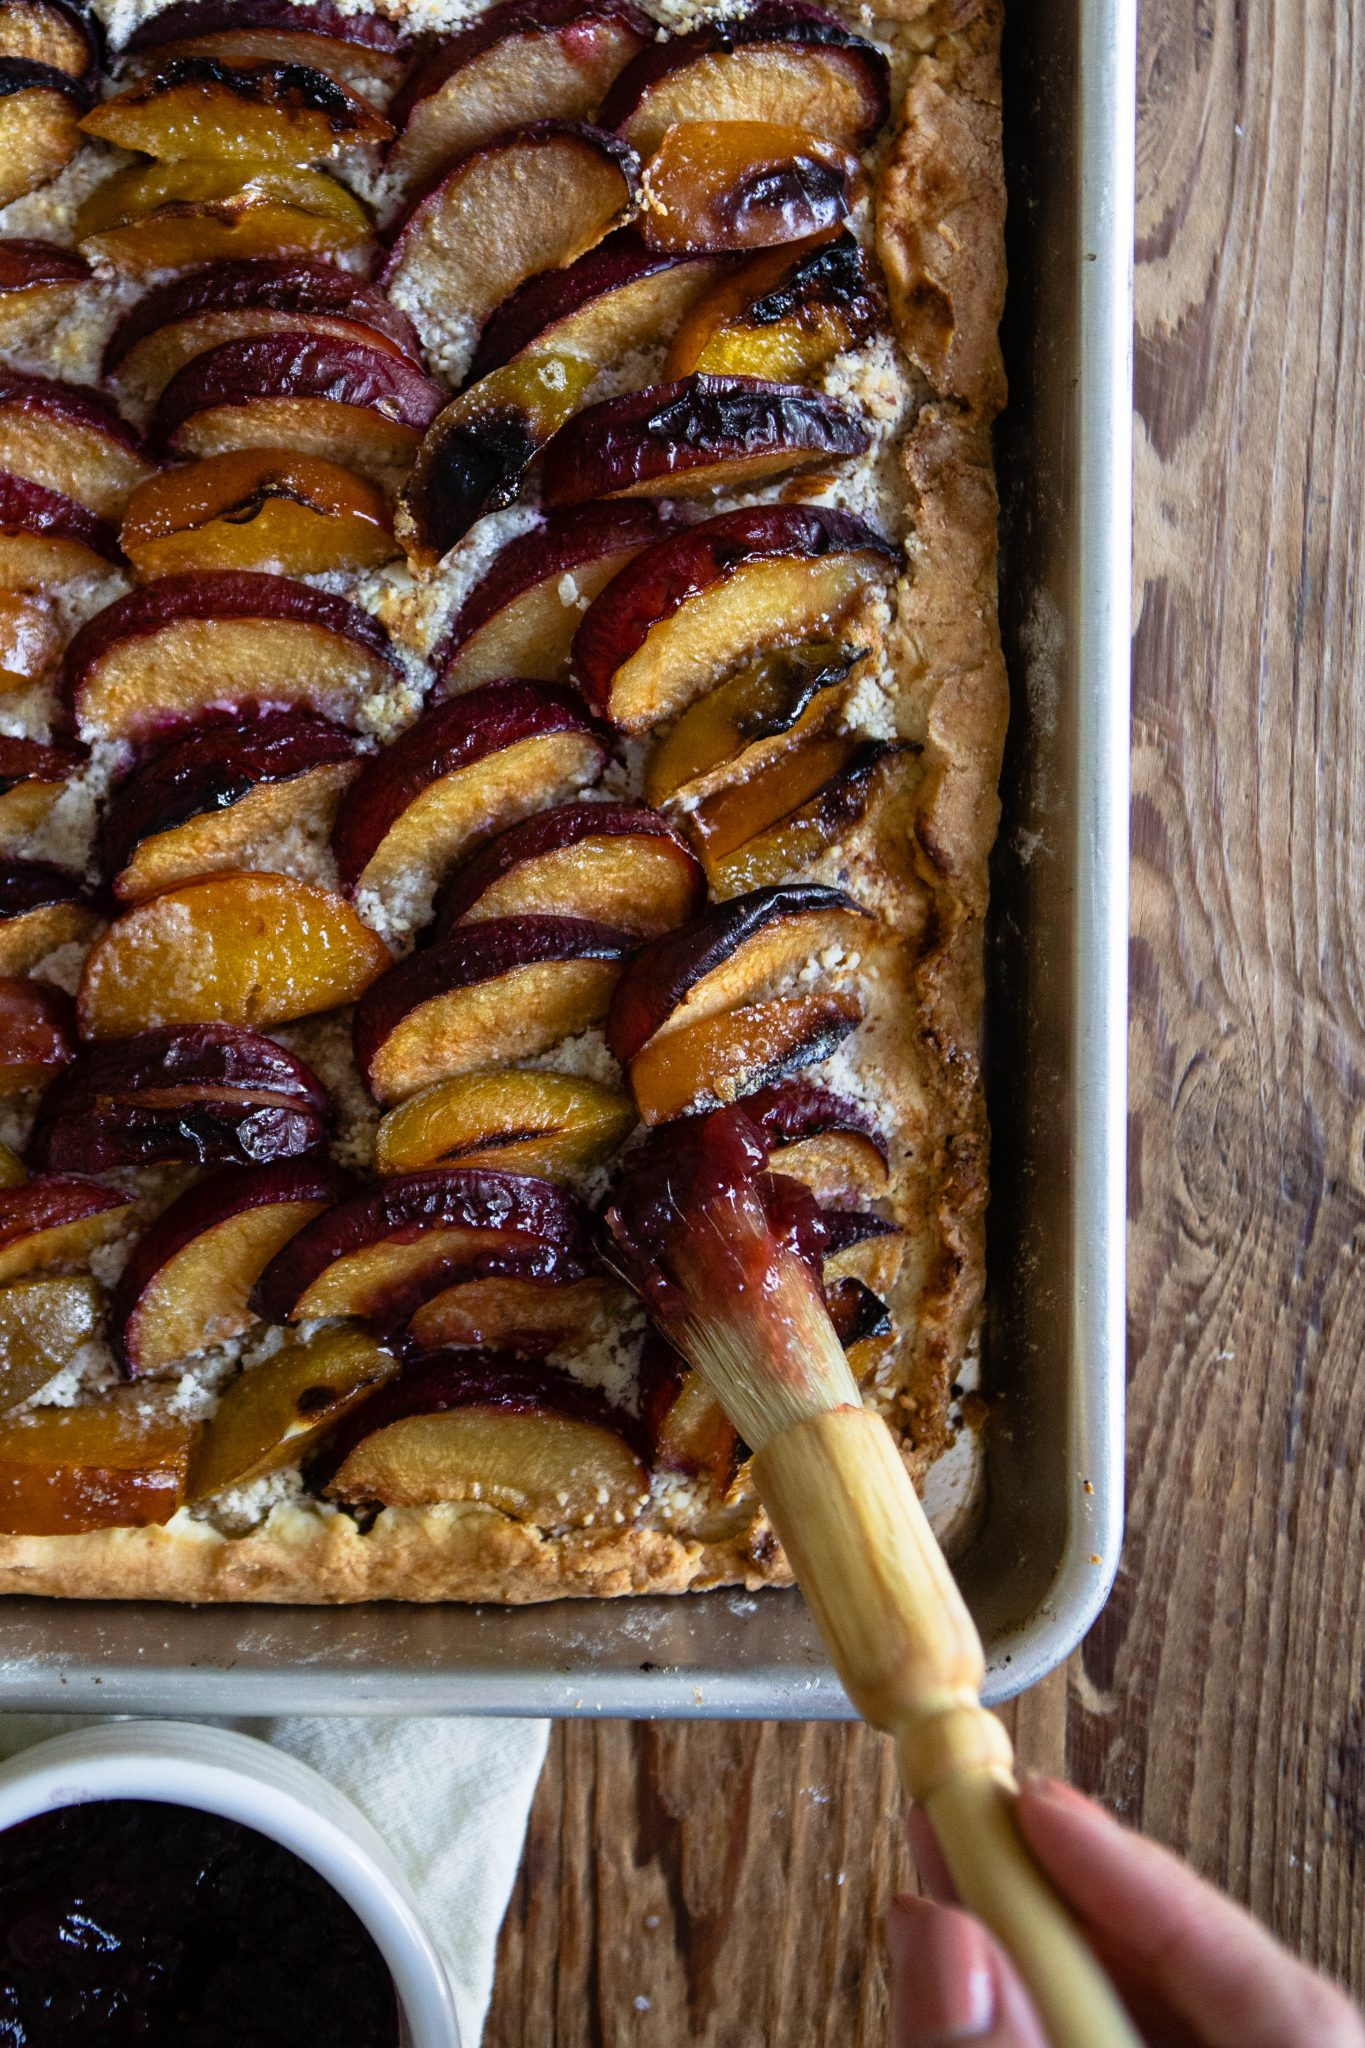 plum tart with raspberry jelly on a baking sheet against a wood backdrop